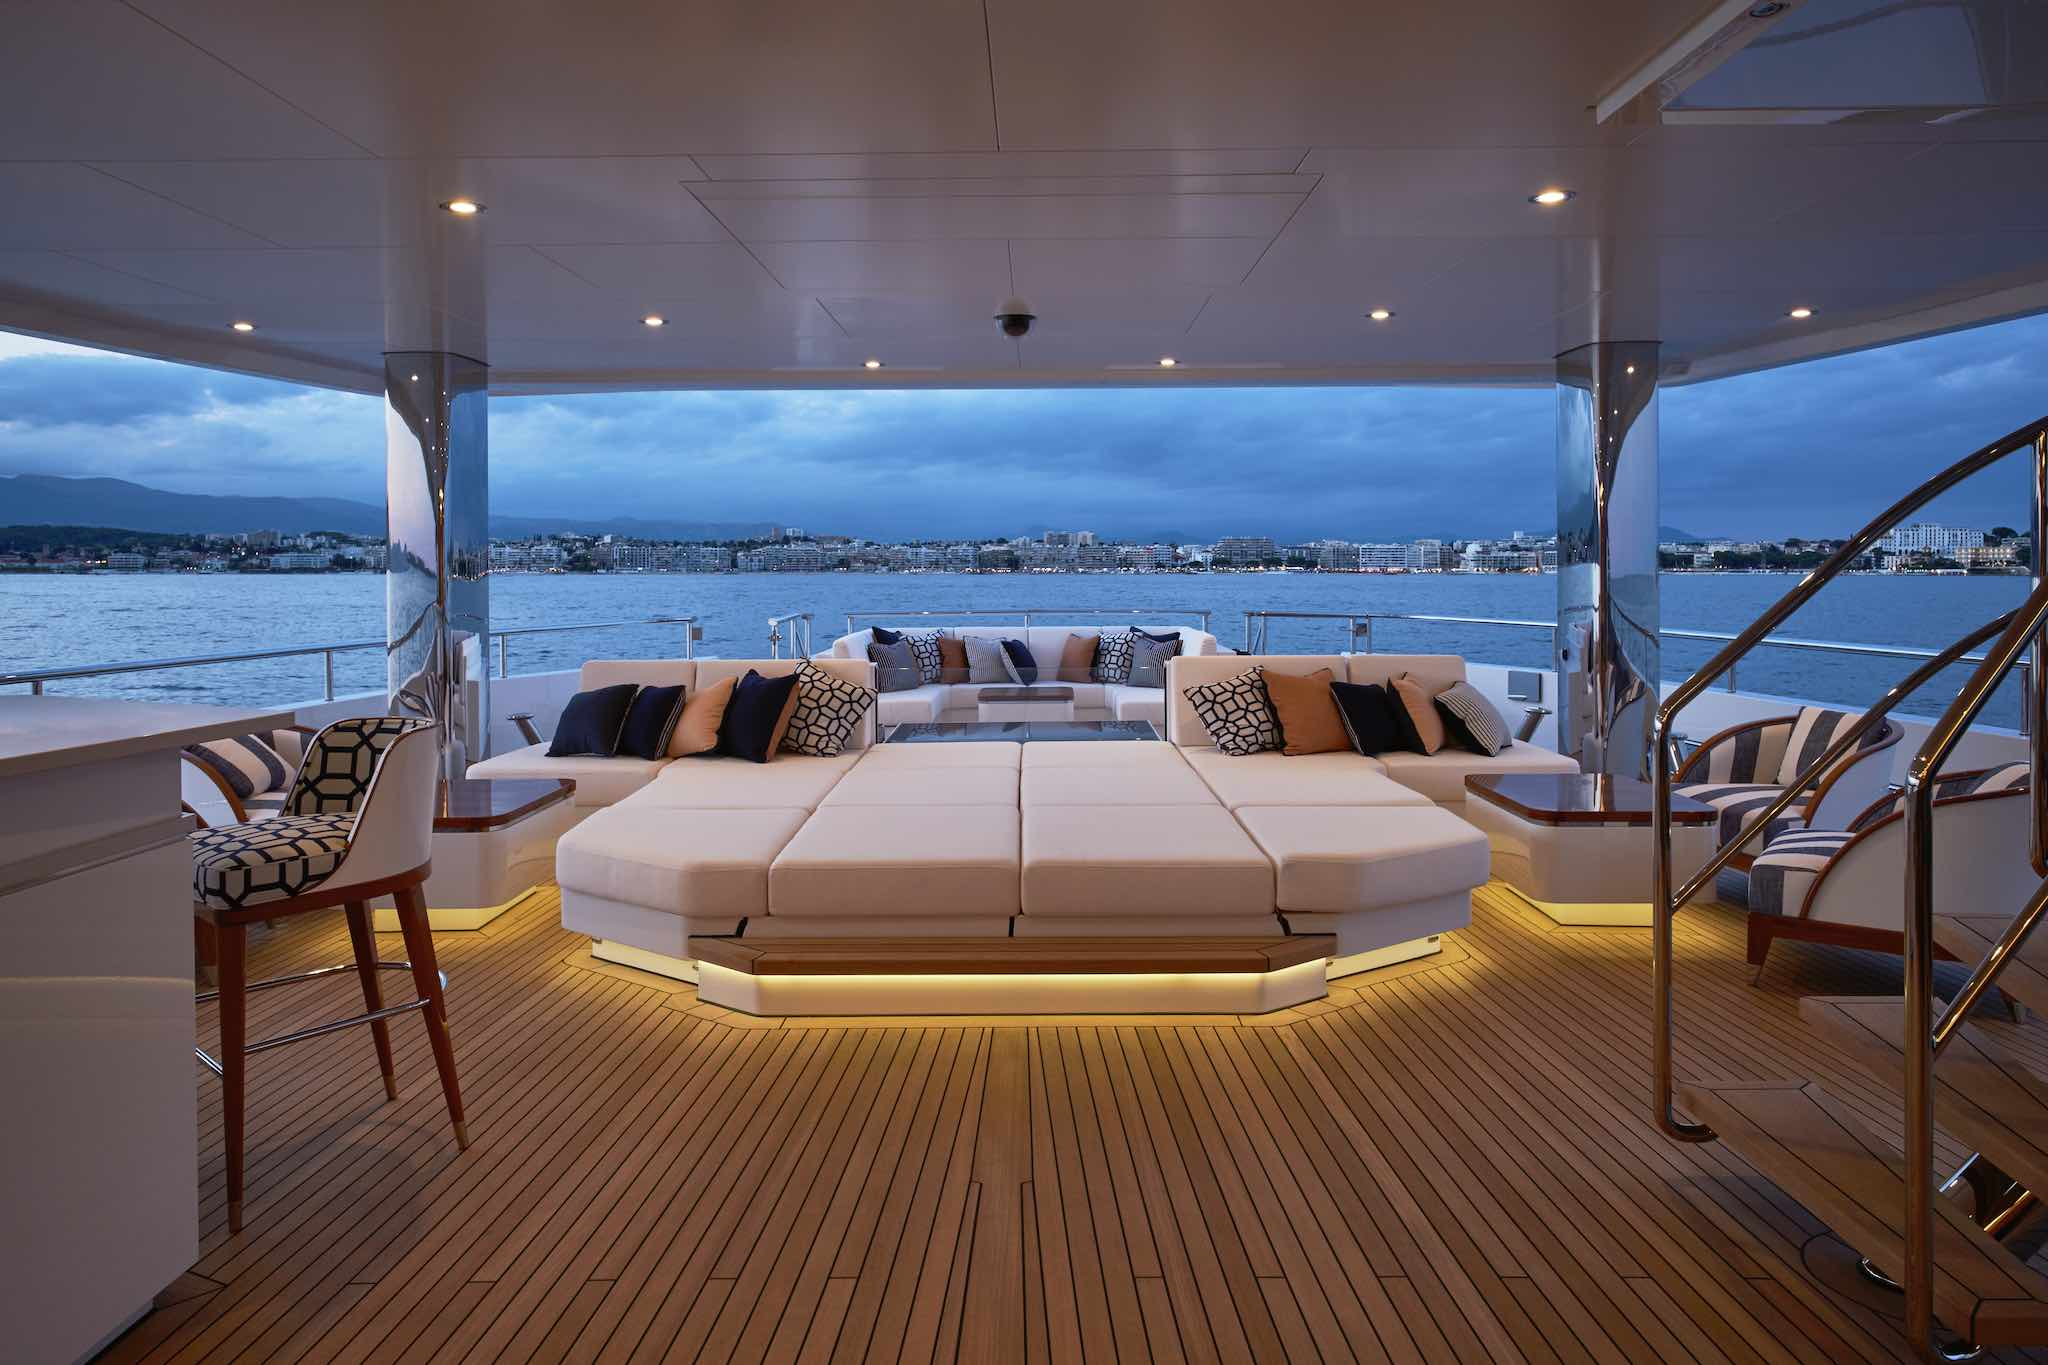 Aft Deck At Night